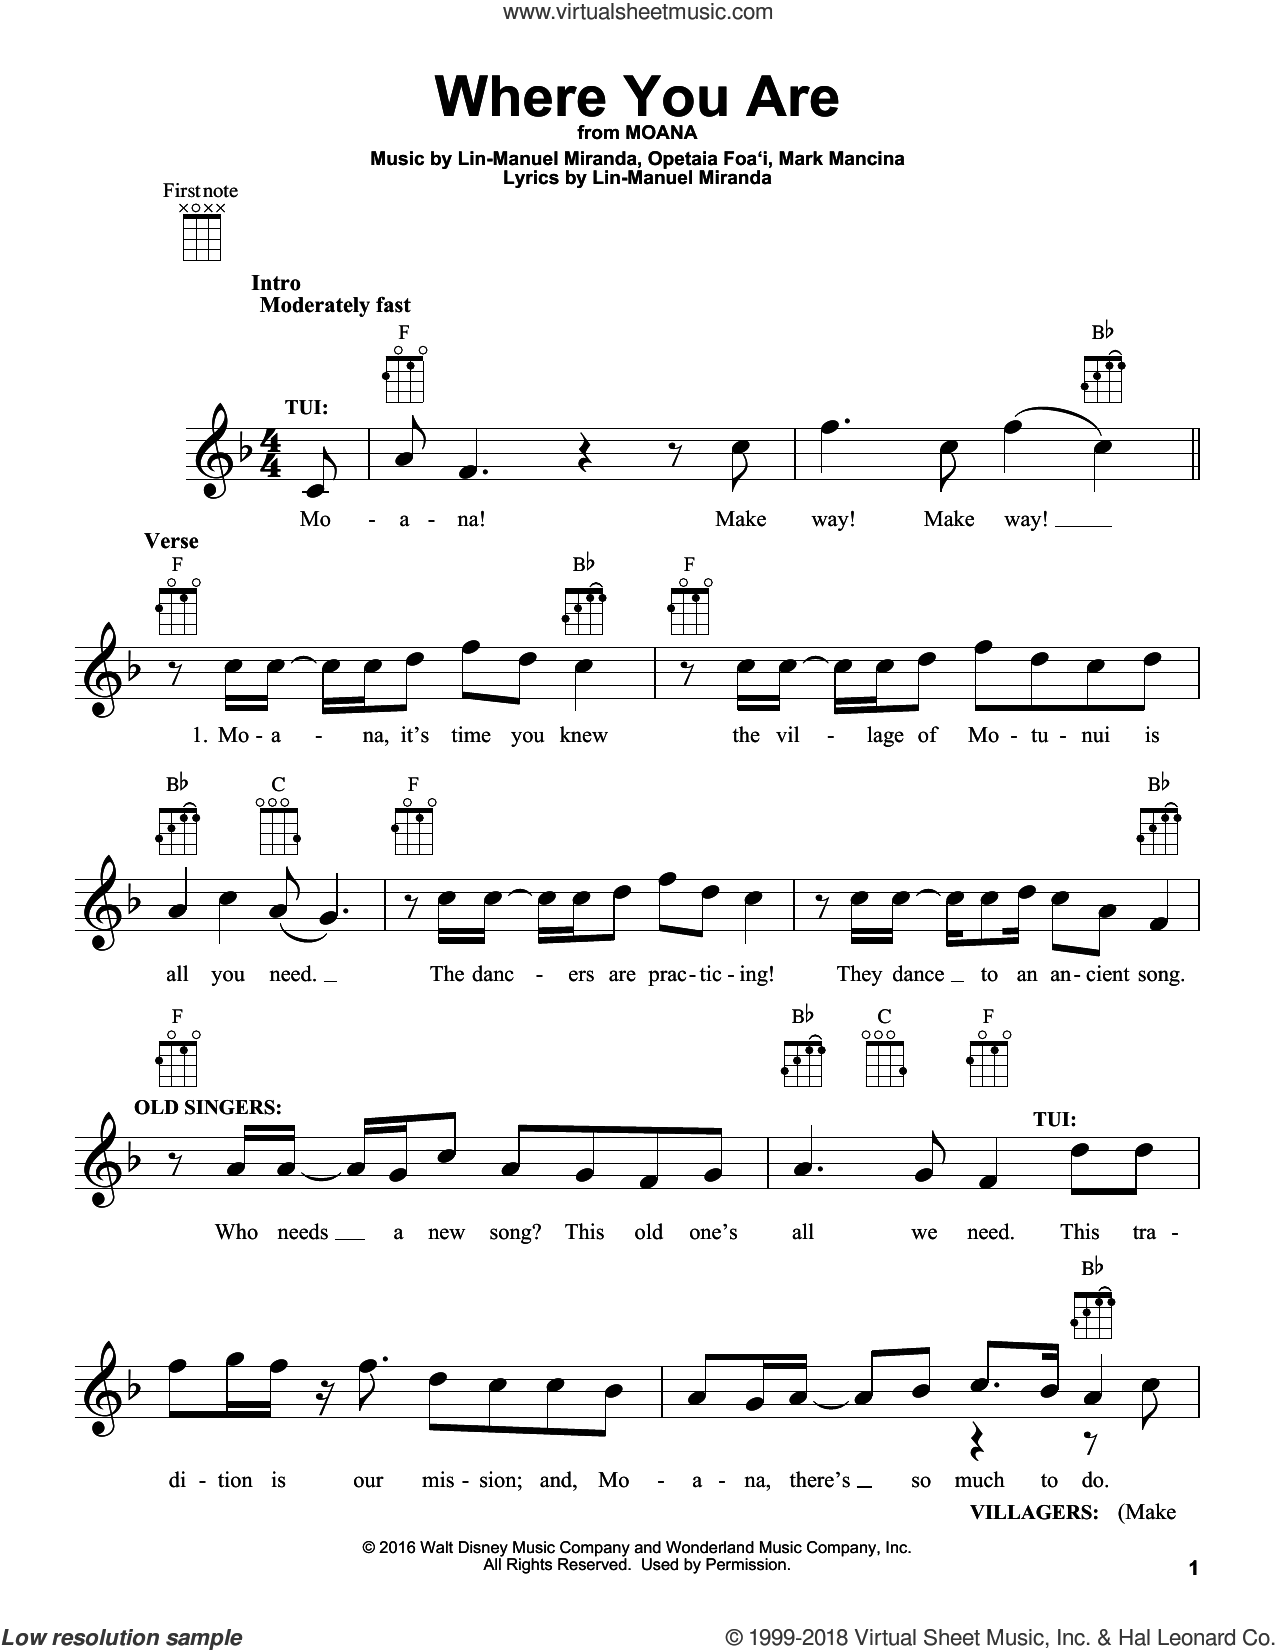 Where You Are sheet music for ukulele by Lin-Manuel Miranda and Mark Mancina, intermediate skill level